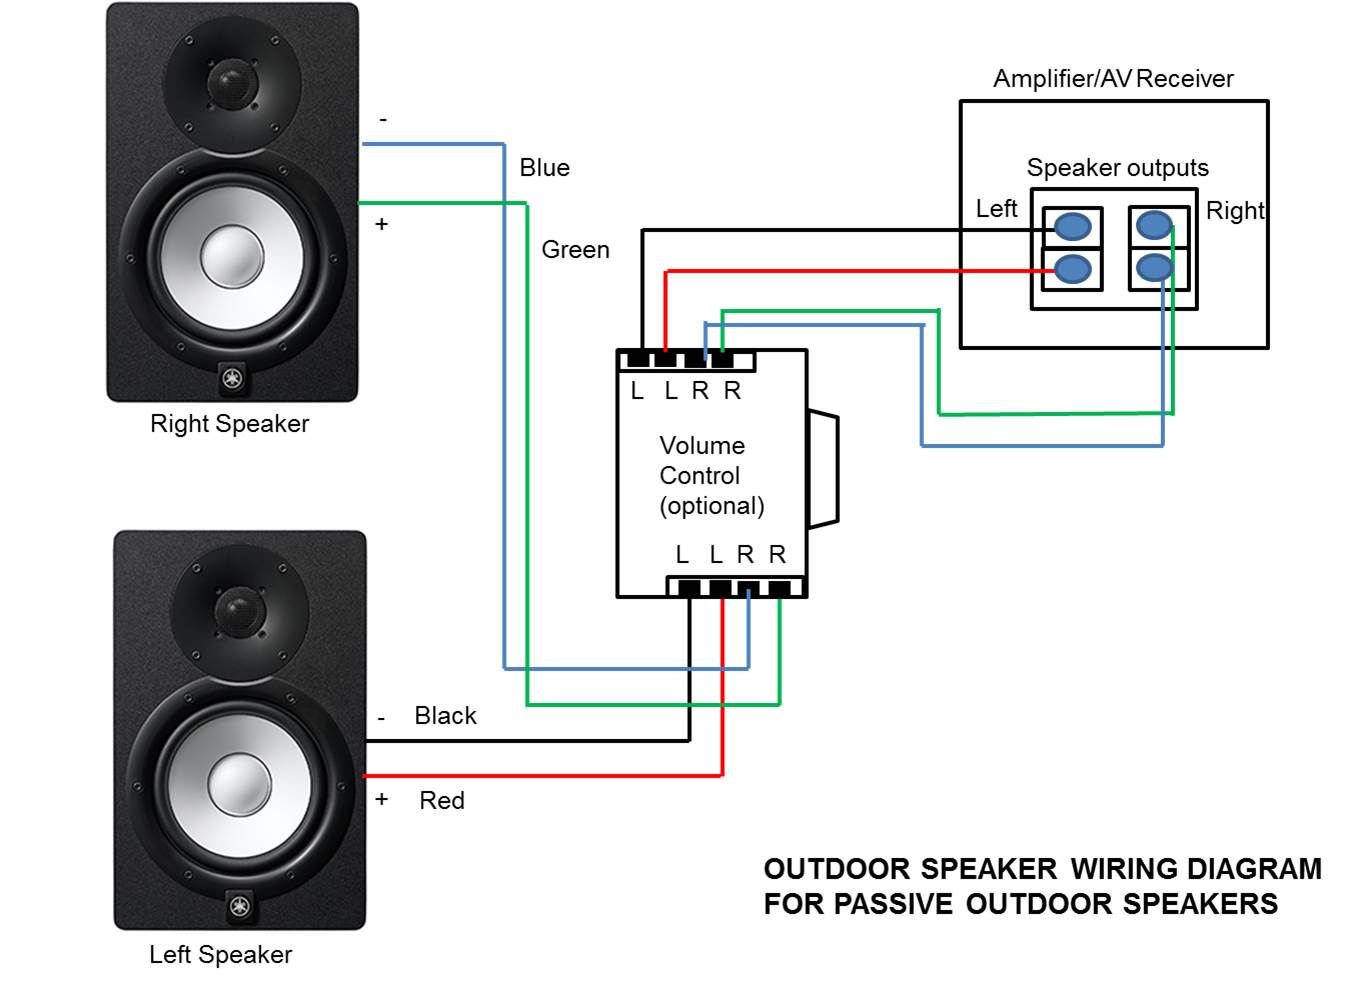 Outdoor Speakers With Volume Control Wiring Amazoncom Pyle Home Pvcs5 Inwall A B Speaker Source Switch Diagram 30 Images